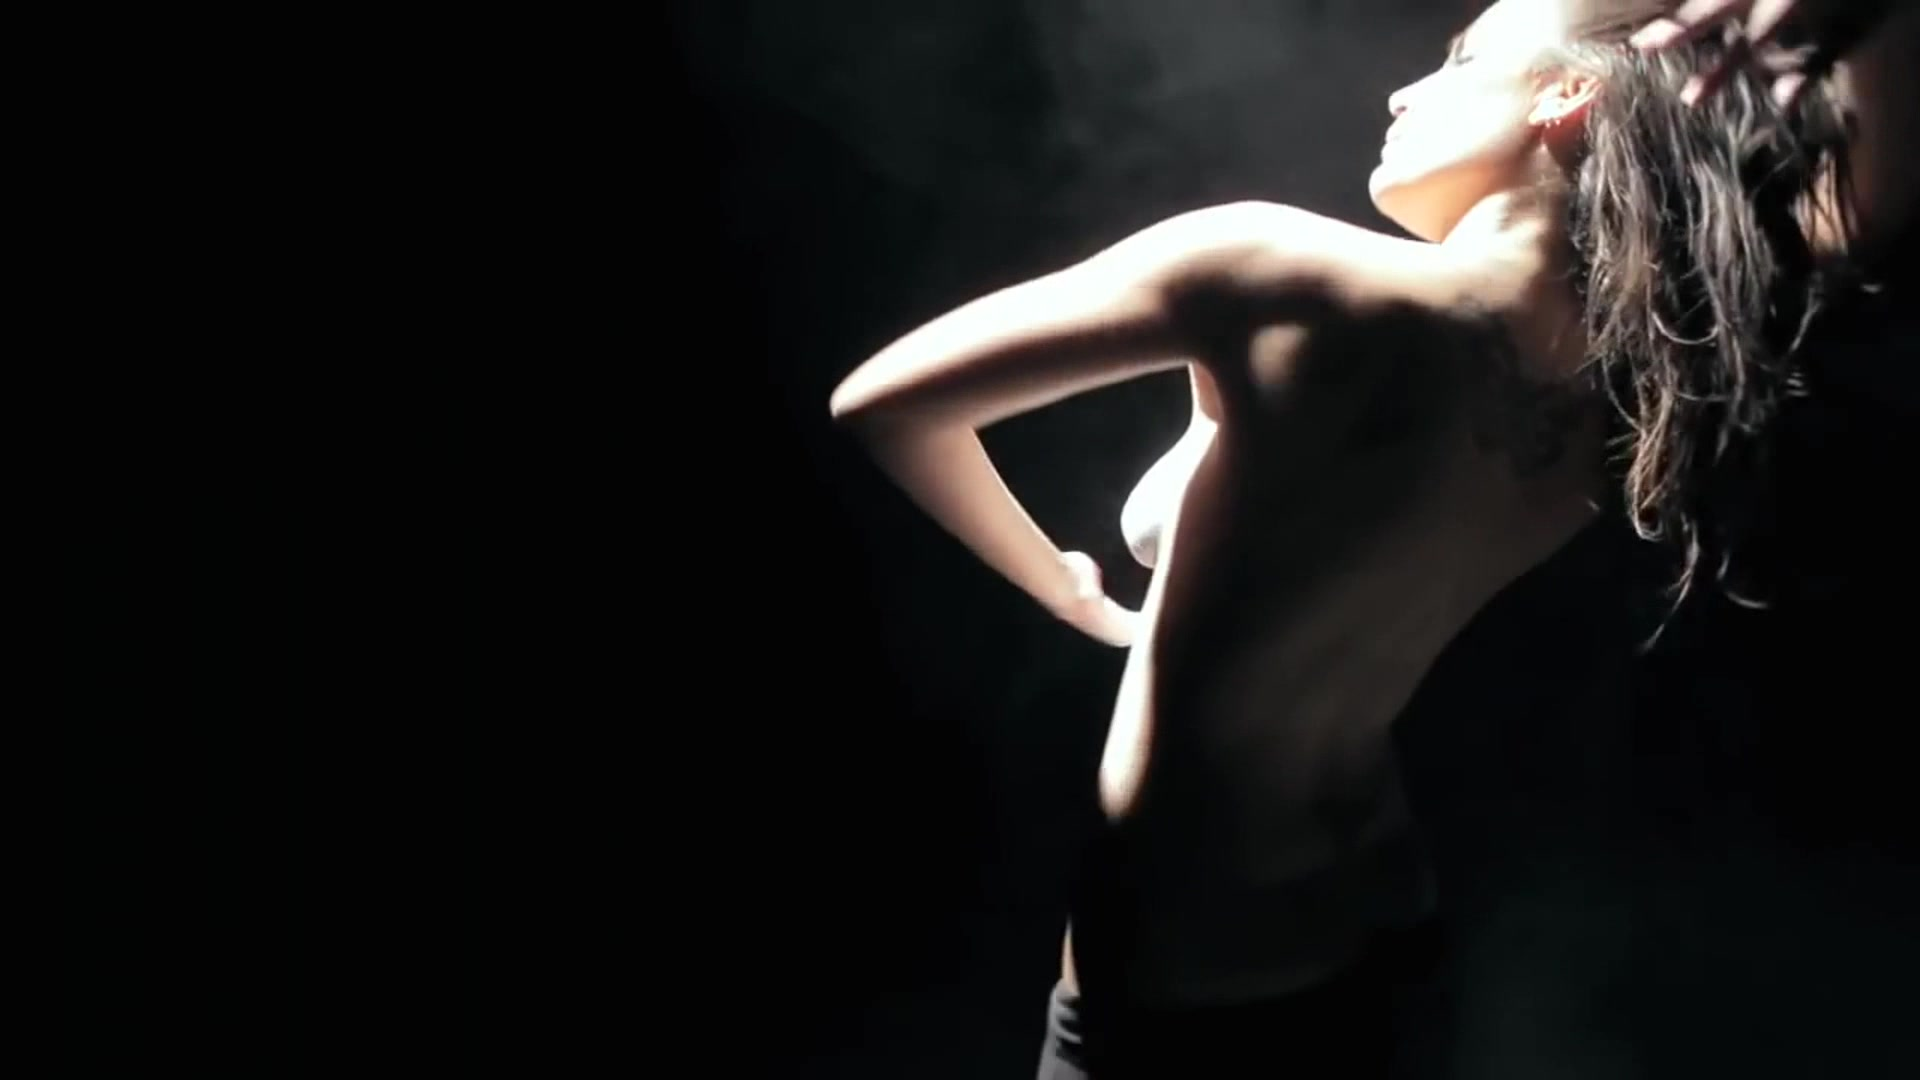 Naked On Stage - Naked Flamenco Dance Video  Best Sexy -9999